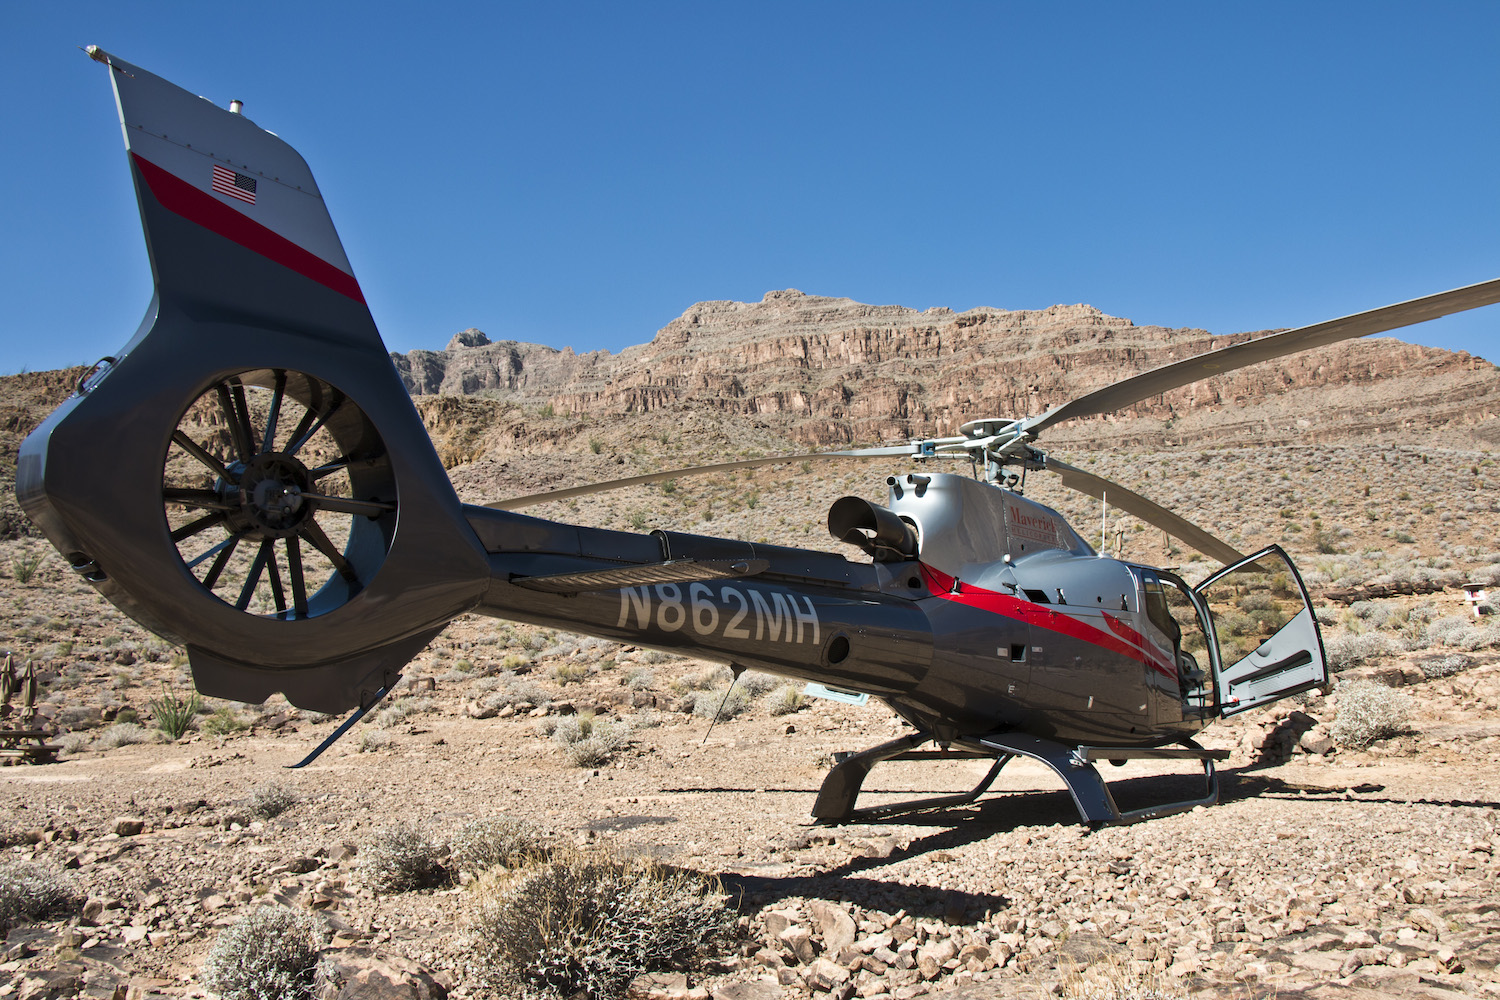 grand canyon helicopter picnic with Grand Canyon Helicopter Tour on Double rainbow tshirt 235715300117625870 besides Grand canyon trip canyon river adventure additionally Pi day t shirt 235170090001009525 moreover Grand Canyon Wondrous Unforgettable besides Grand Canyon Helicopter Tour.